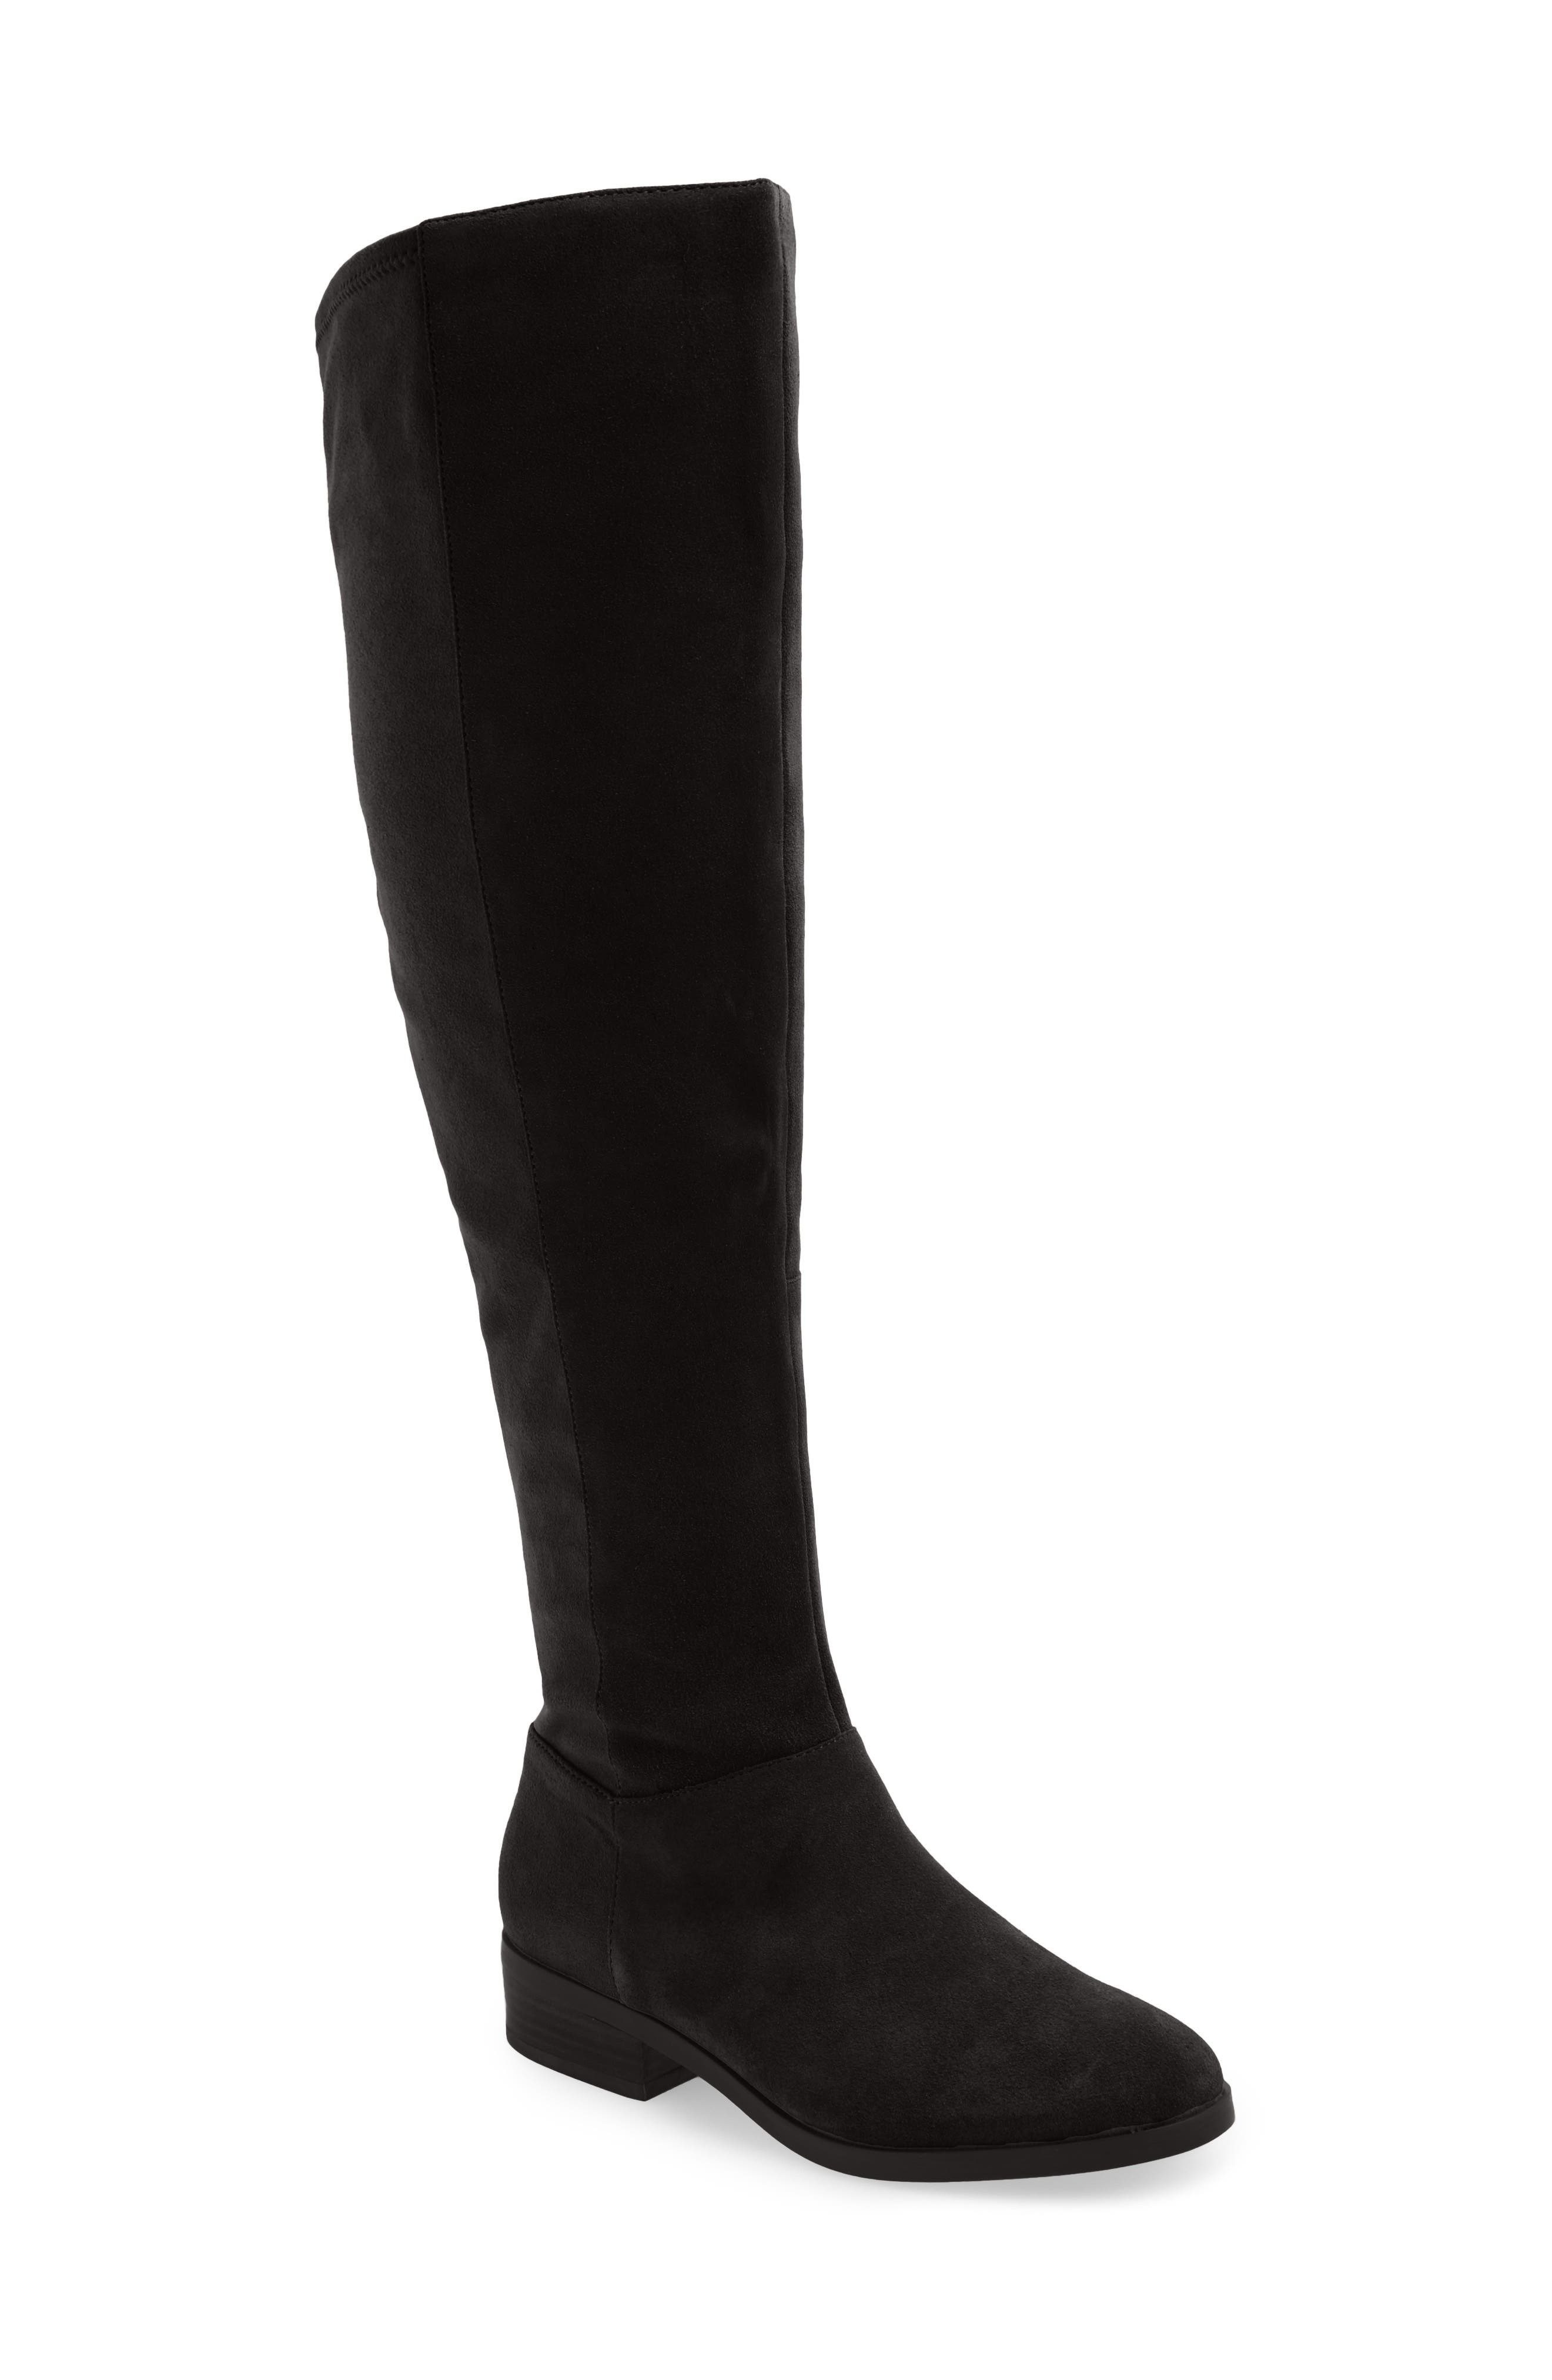 Alternate Image 1 Selected - Sole Society Kinney Over the Knee Boot (Women)